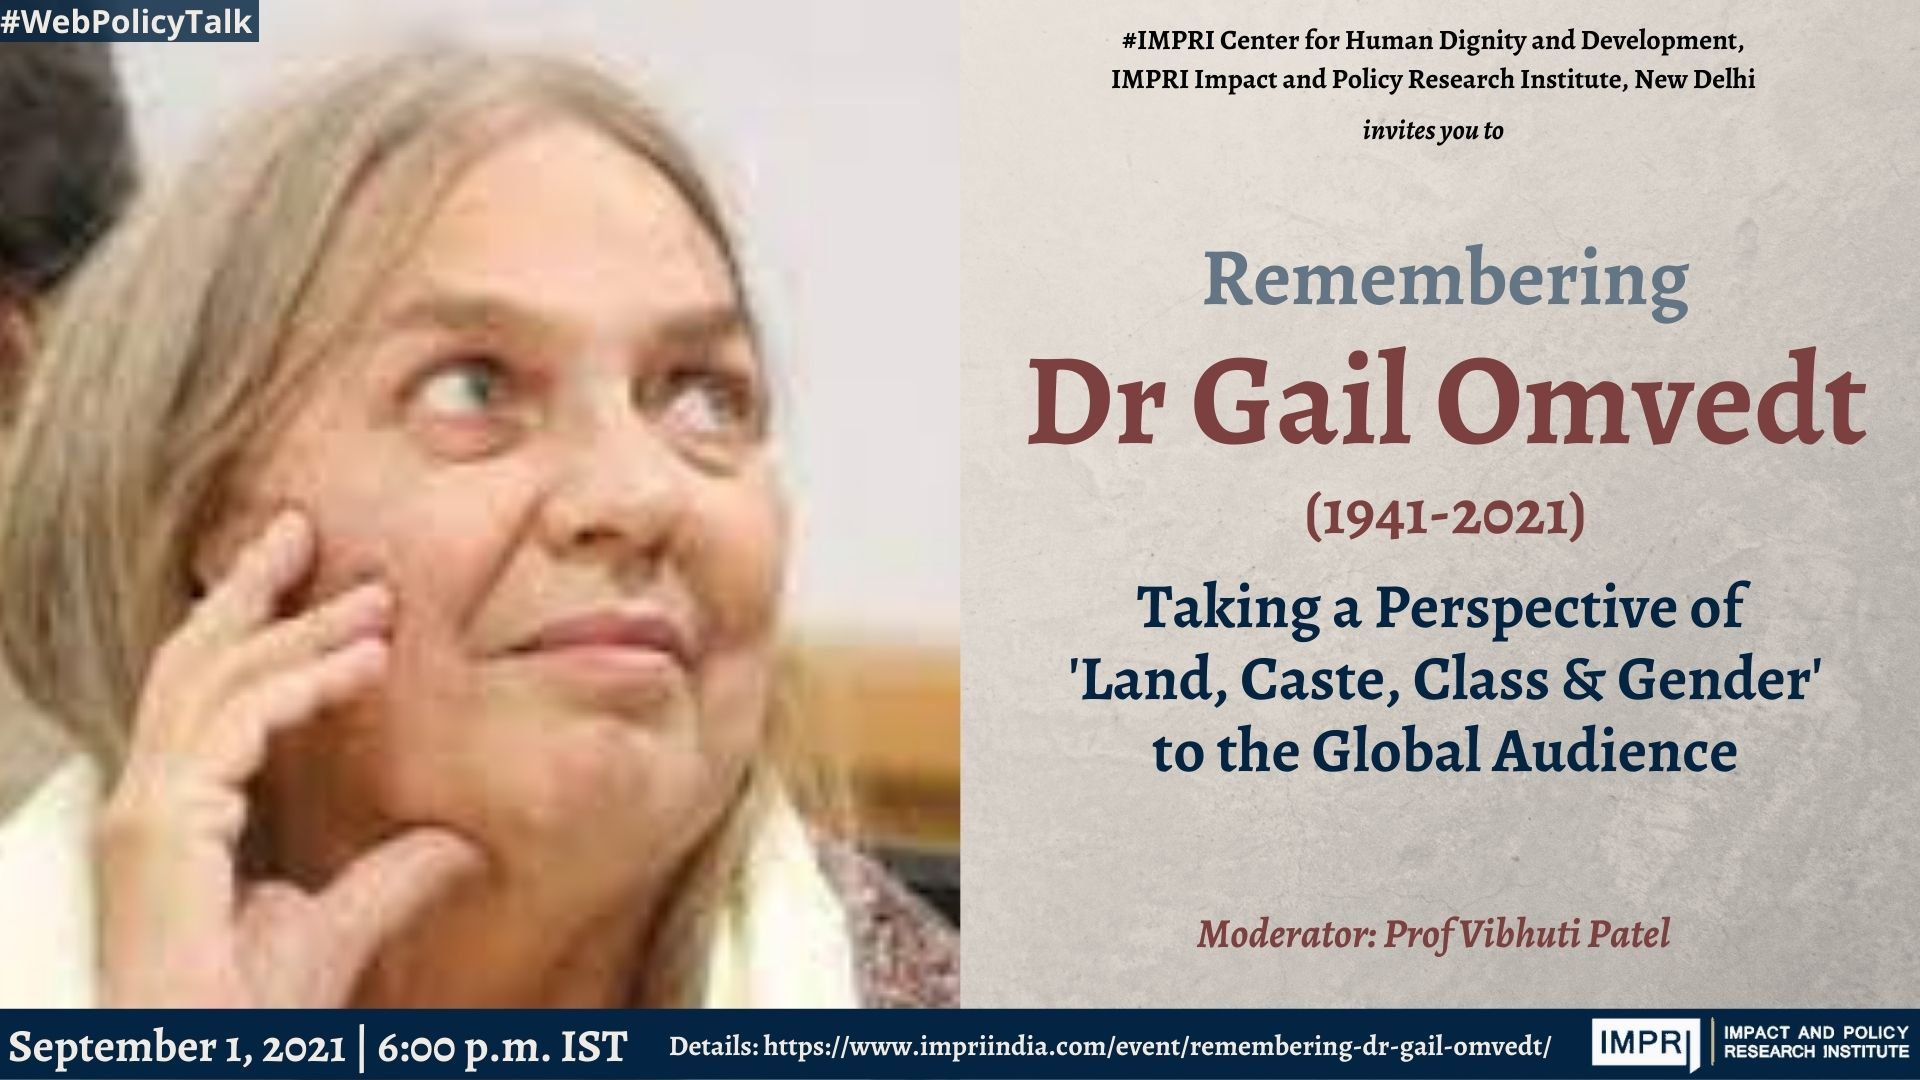 Remembering Dr Gail Omvedt: Taking a Perspective of 'Land, Caste, Class & Gender' to the Global Audience